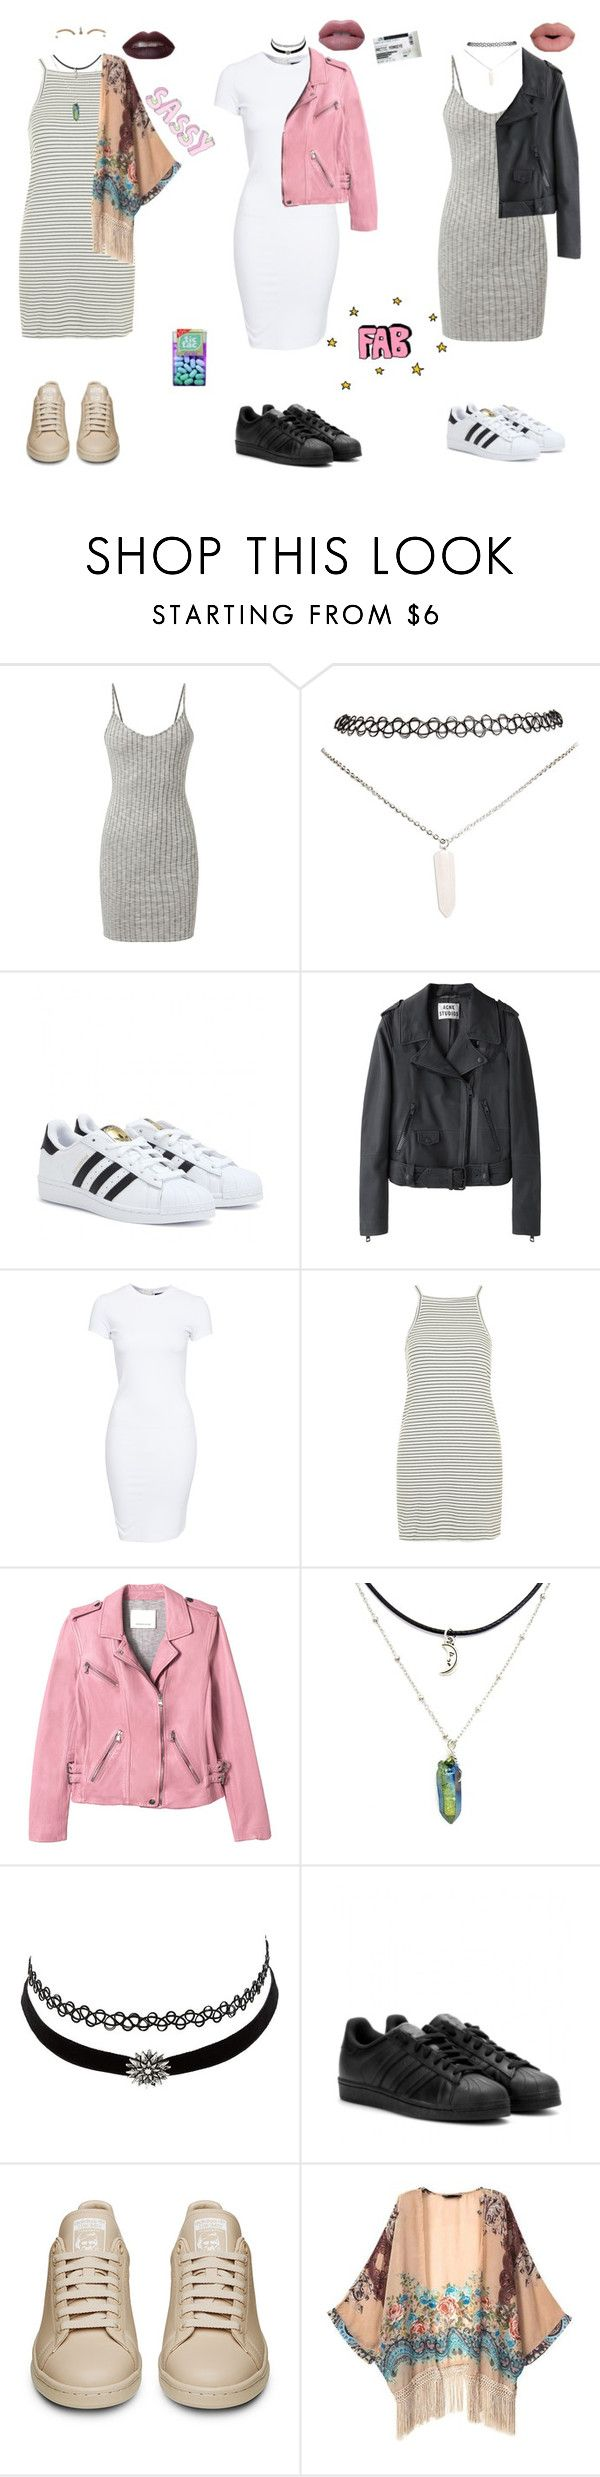 """How I Style Adidas Shoes"" by stellaluna899 ❤ liked on Polyvore featuring Wet Seal, adidas, Sephora Collection, Acne Studios, SELECTED, Topshop, Rebecca Taylor, Charlotte Russe, Retrò and dress"